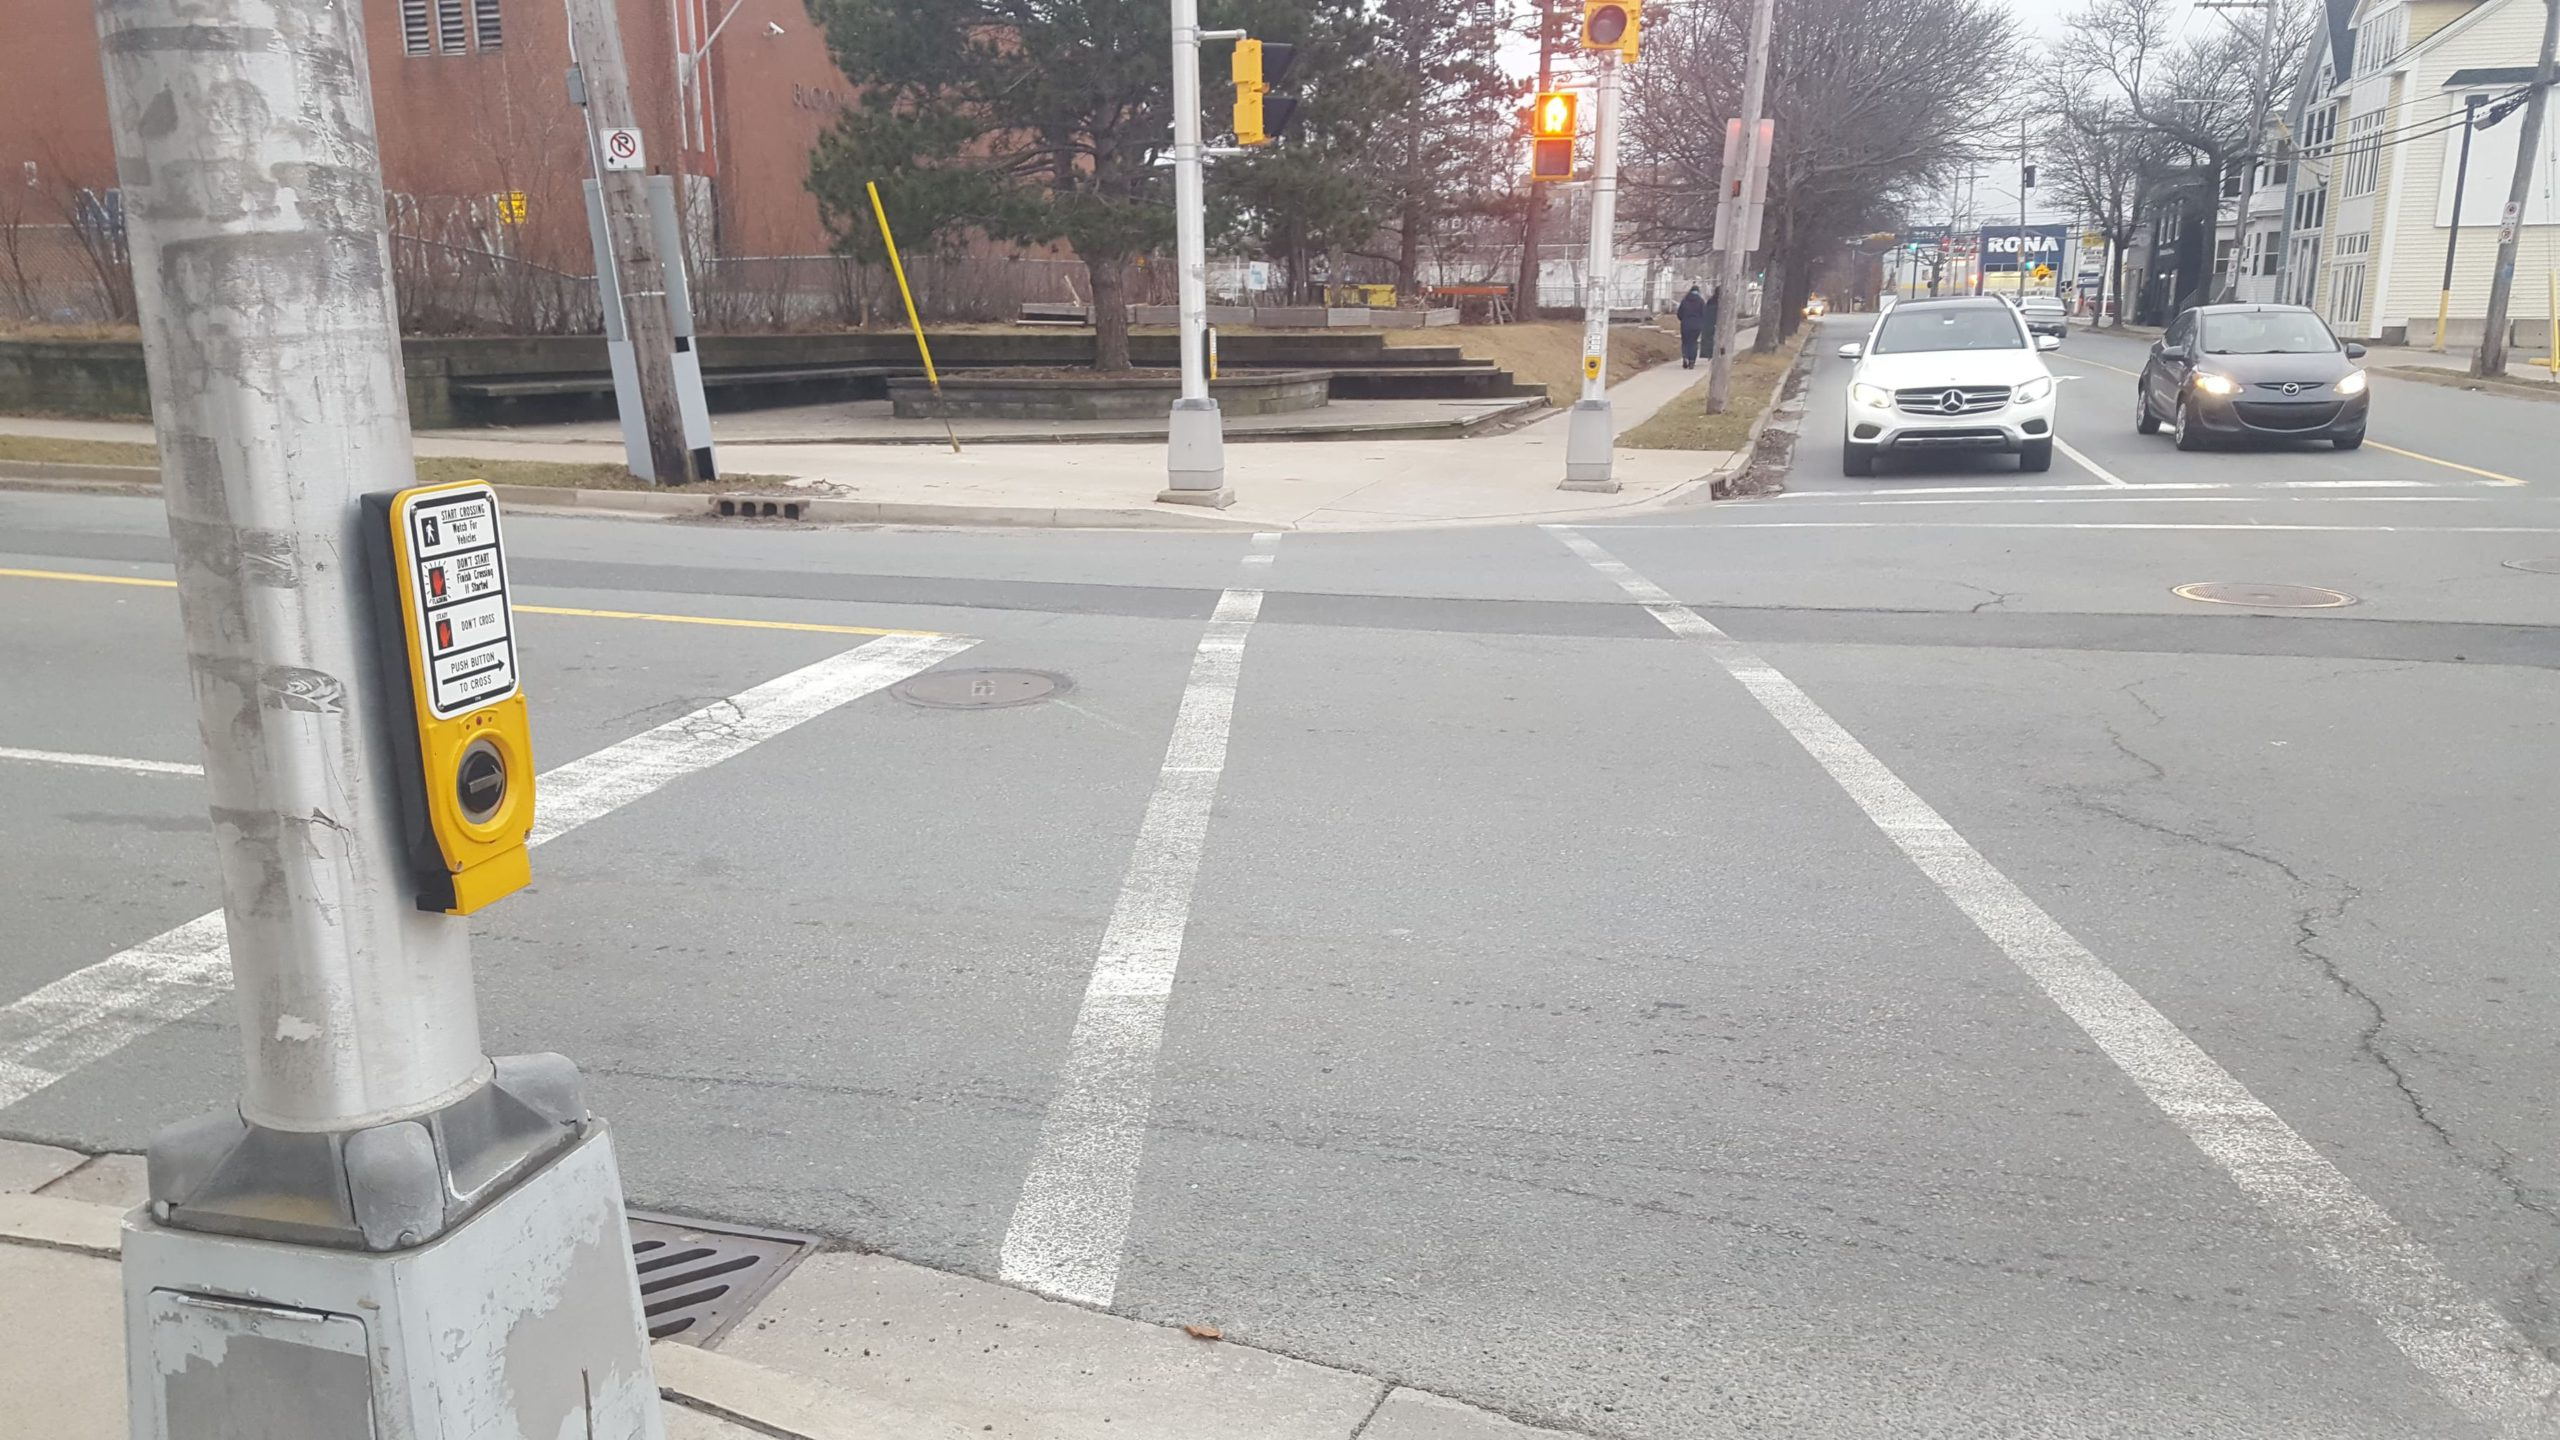 An Accessible Pedestrian Signal in Halifax.